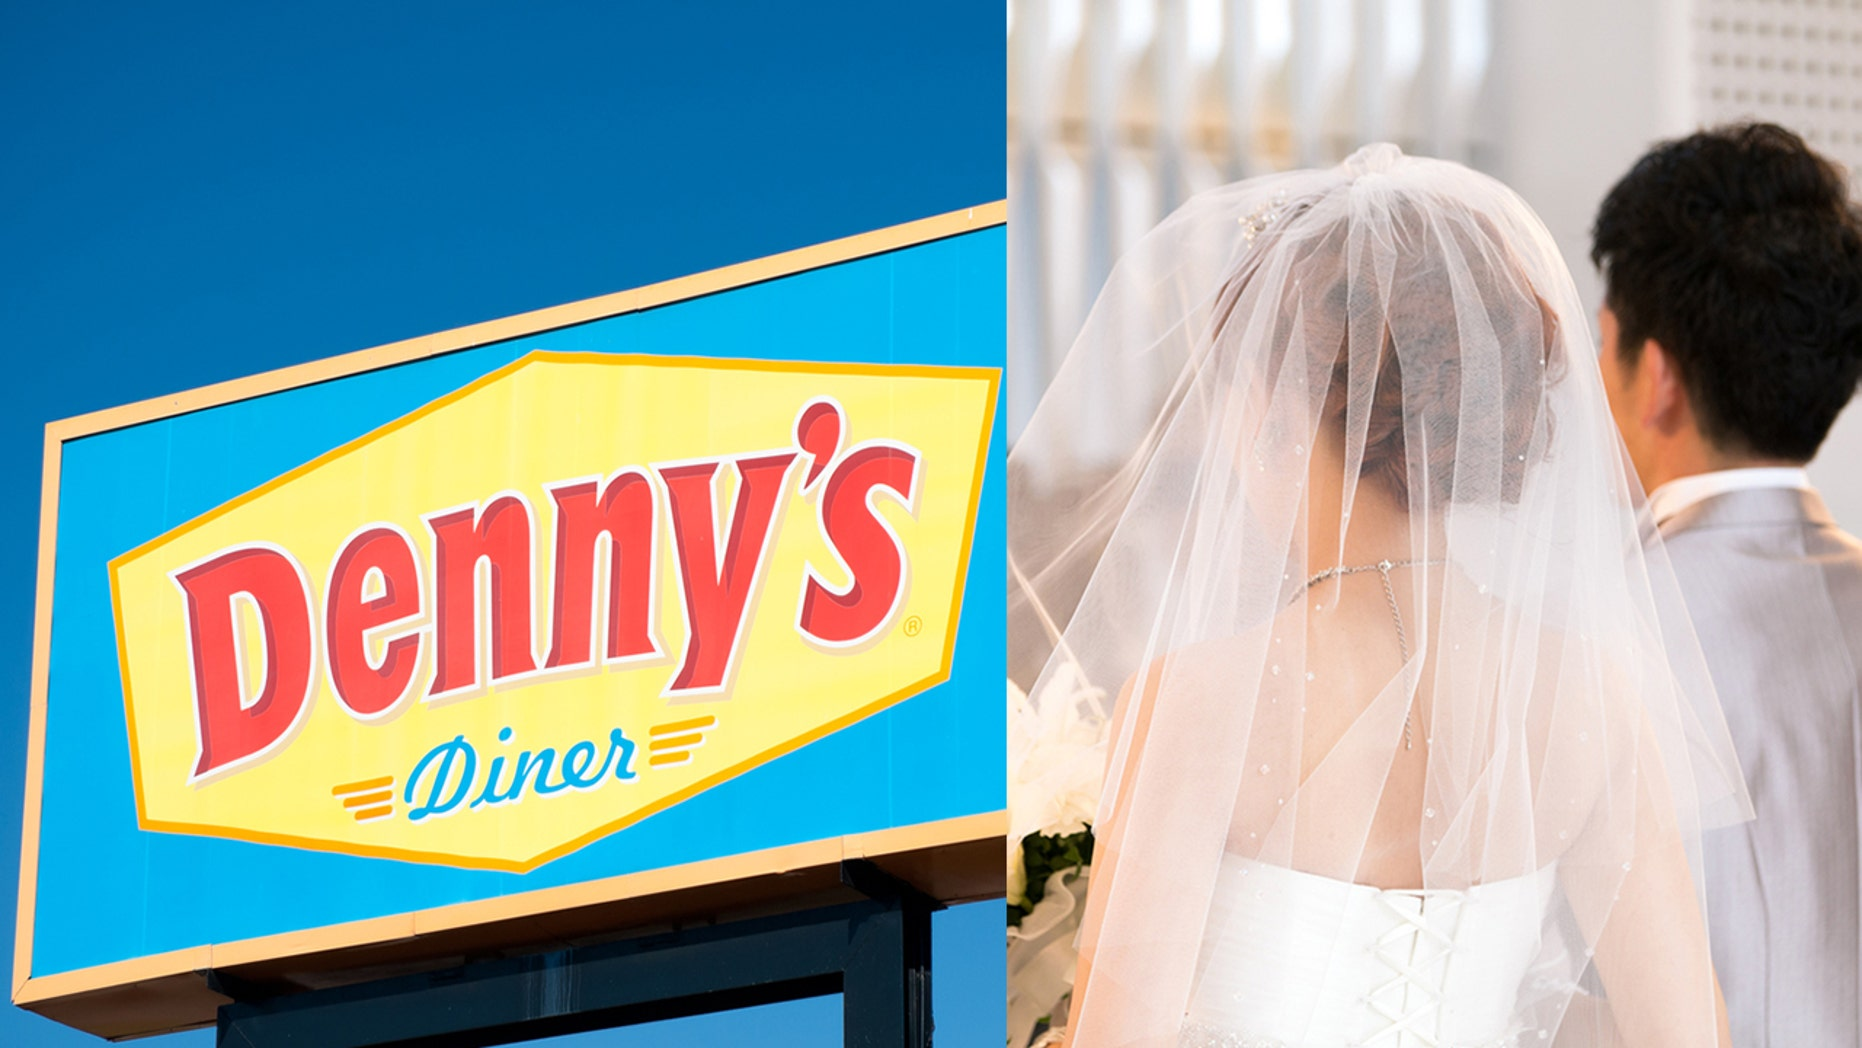 Denny's is letting couple in love get hitched at their Las Vegas chapel for less than $100 this Valentine's Day.